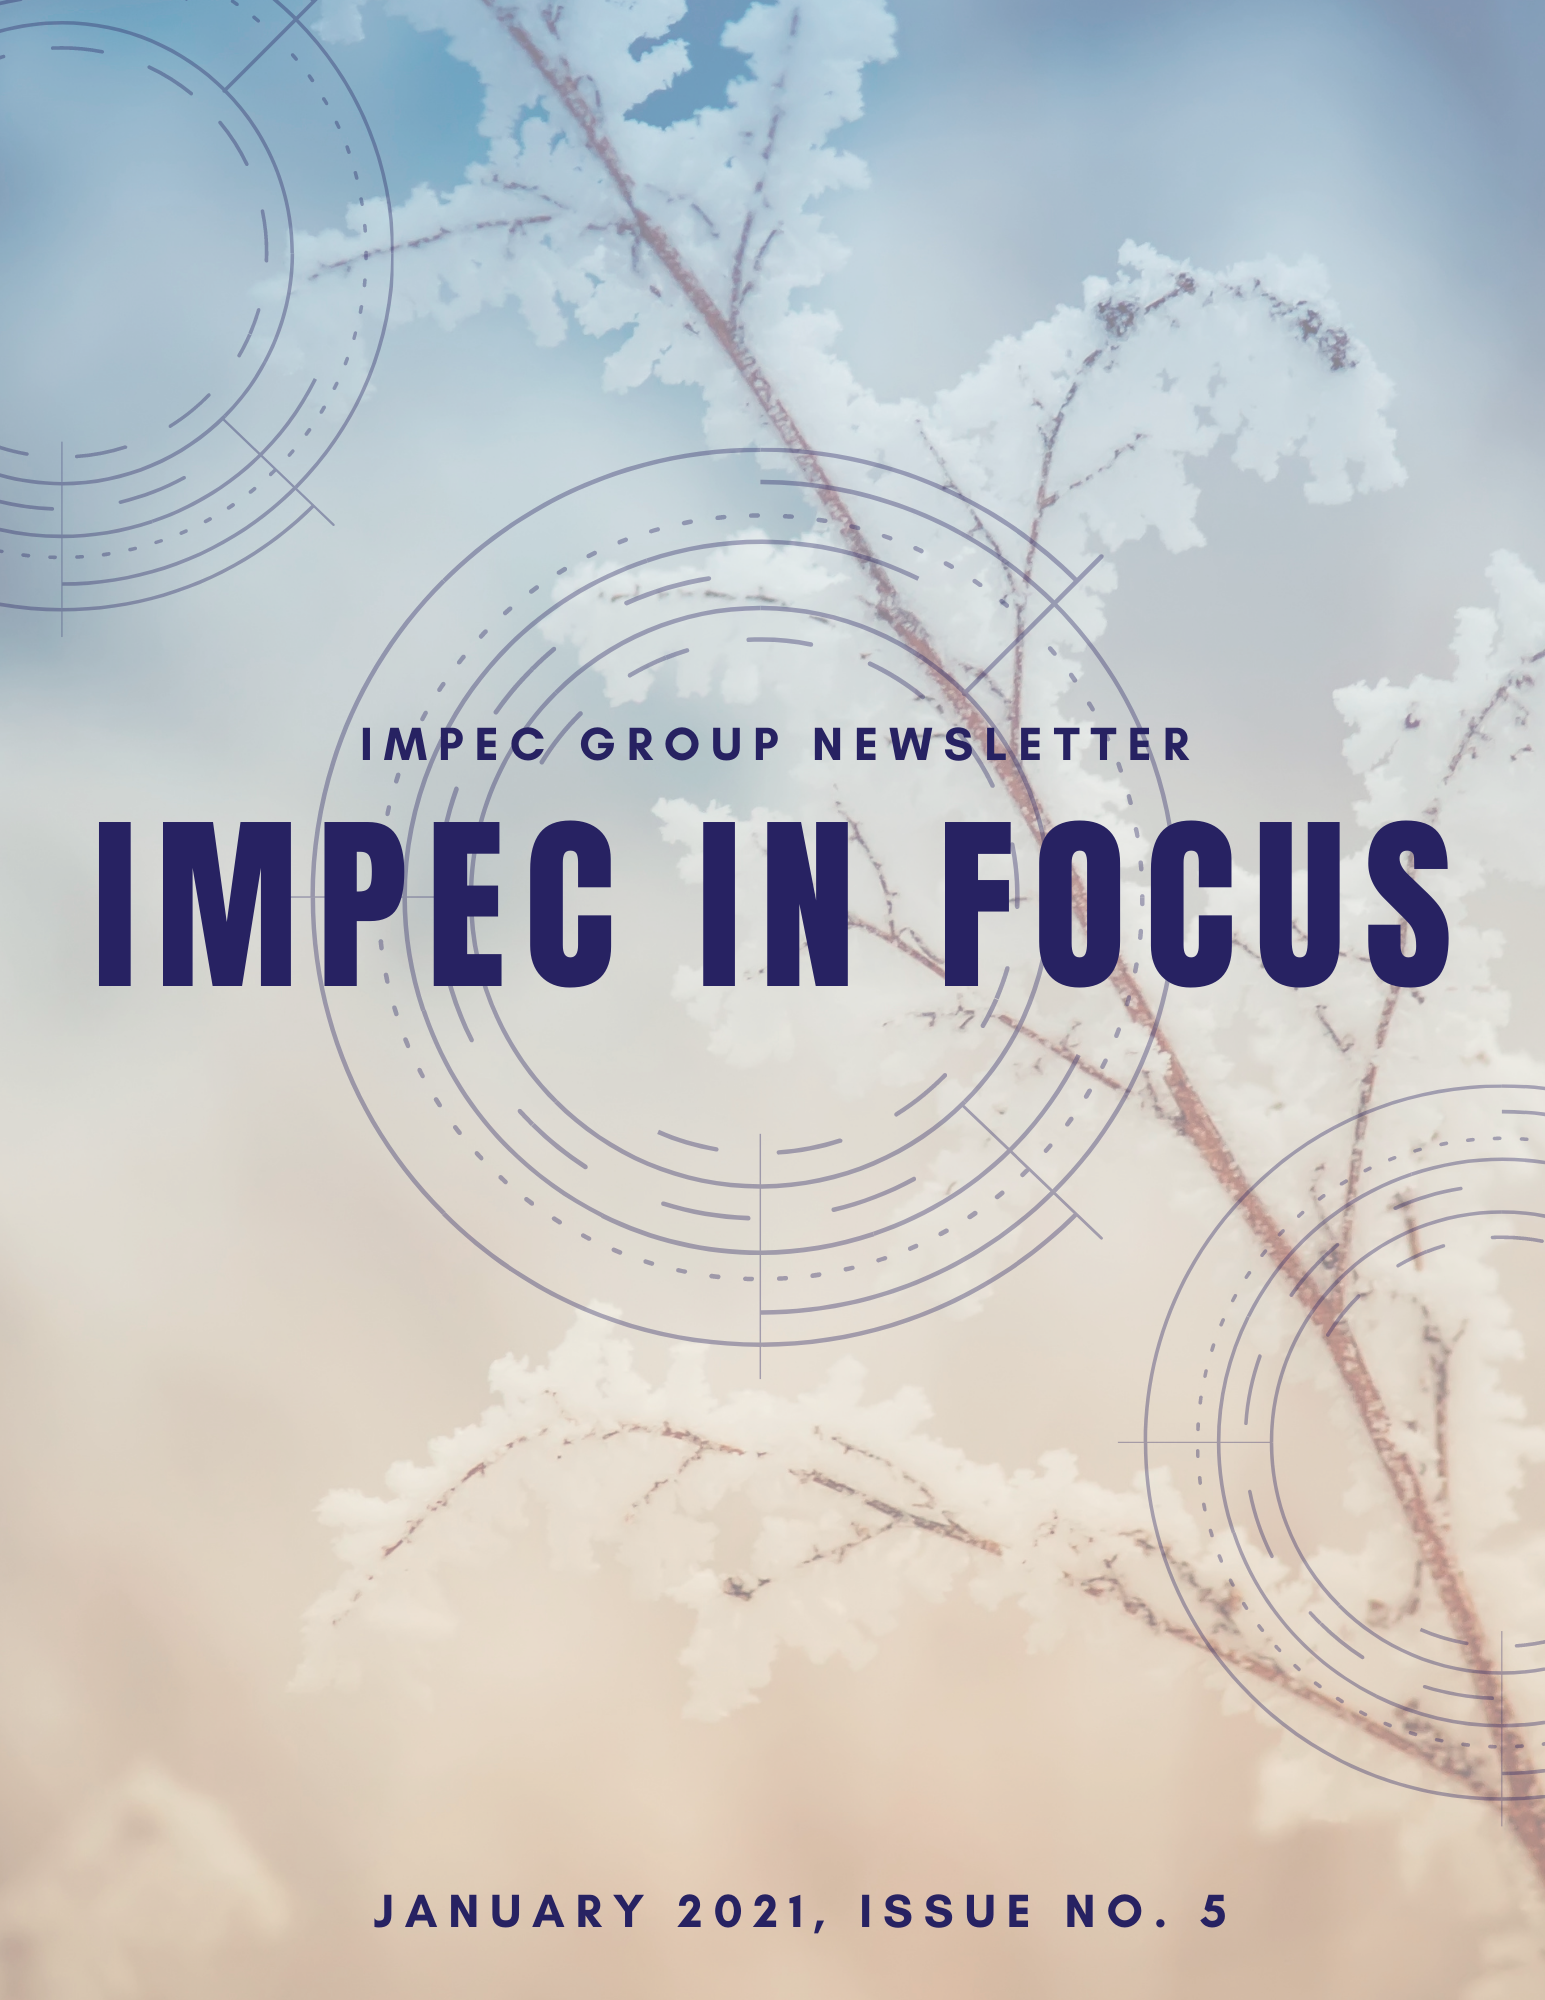 Impec Group January 2021 Newsletter